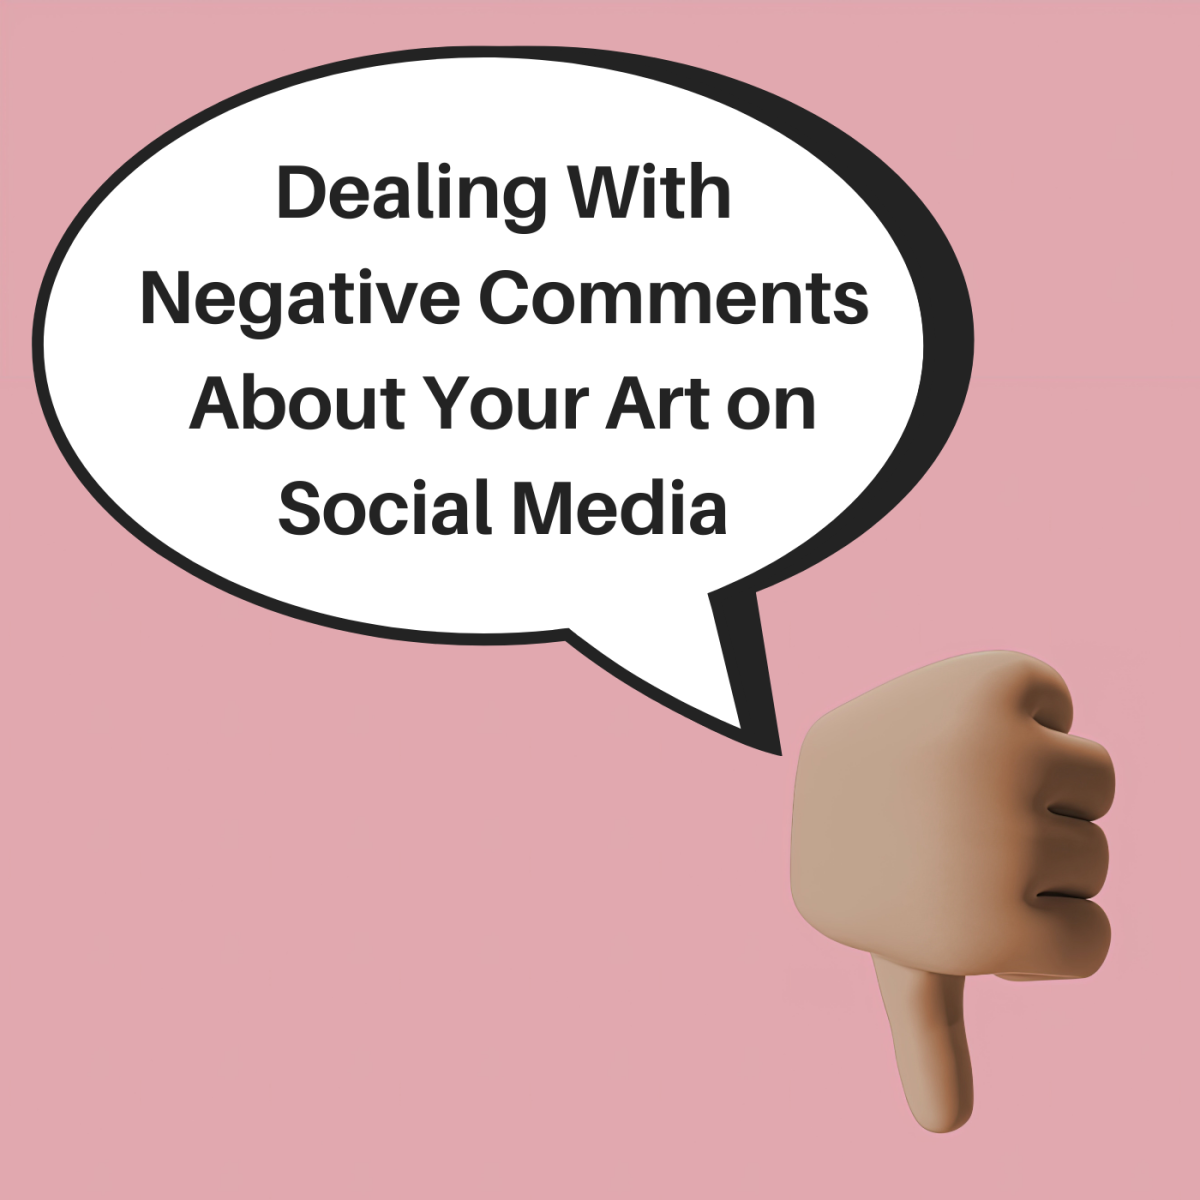 Learn how to handle negative social media comments about your art.